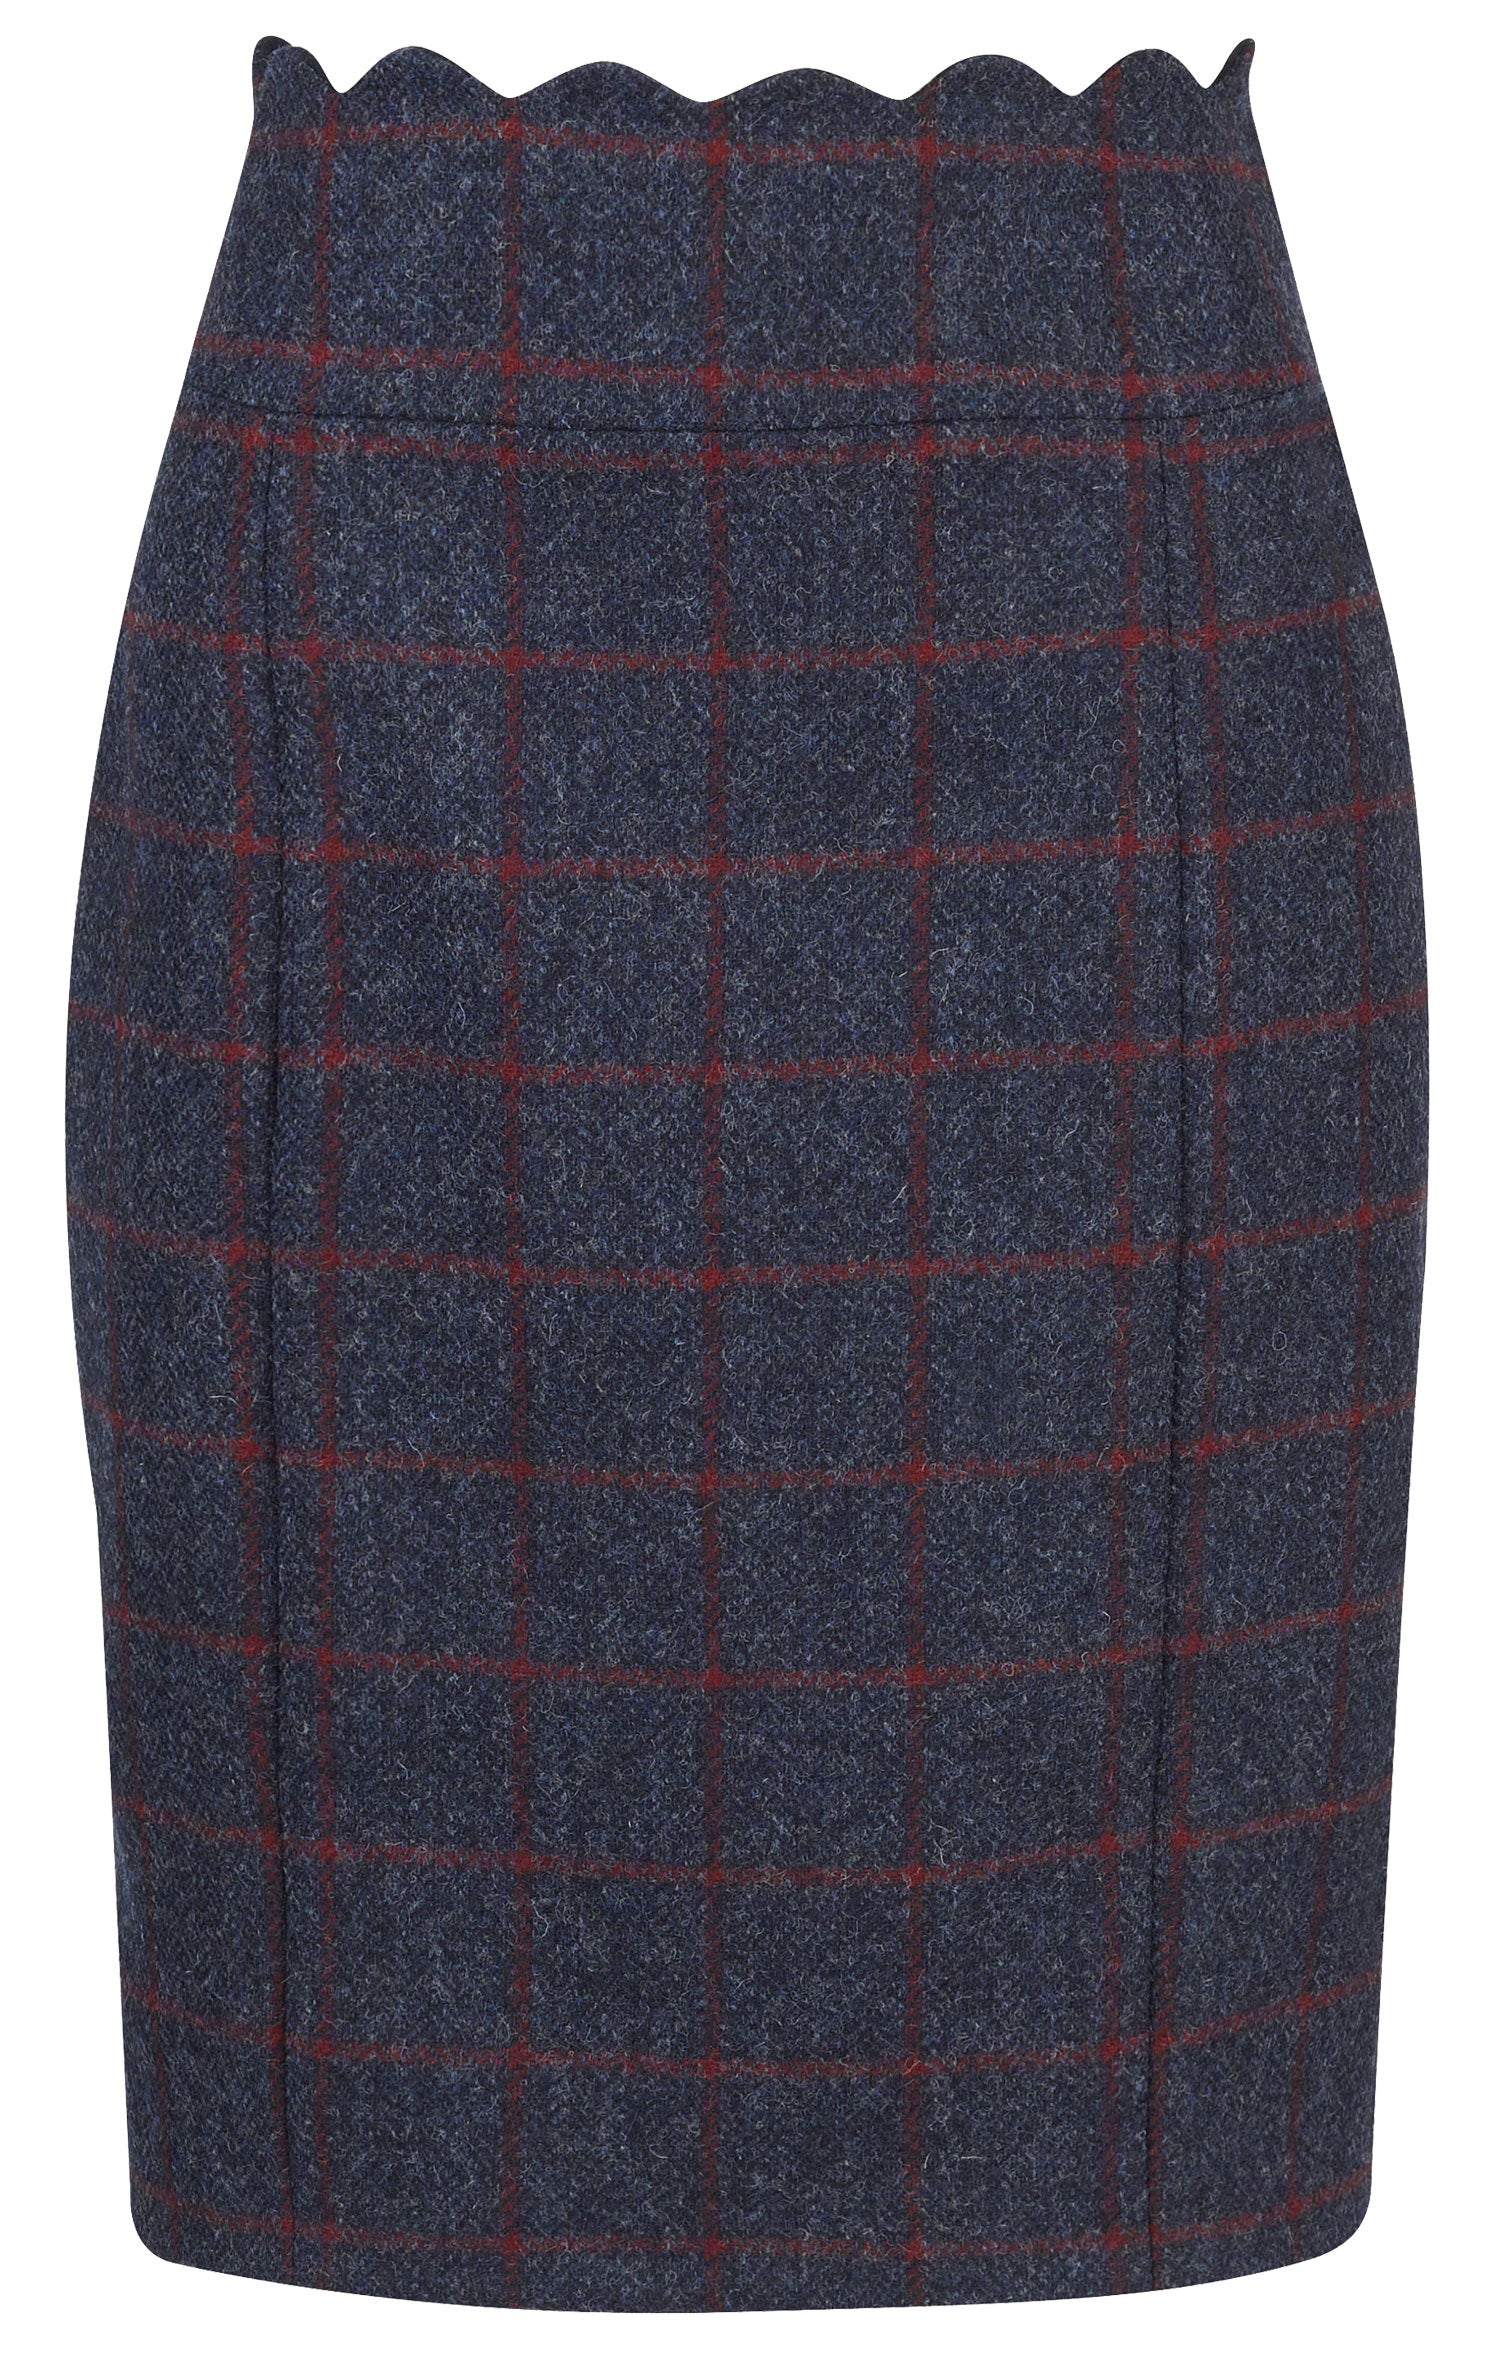 Jack Murphy Taylor Tweed Skirt Navy Herringbone Check